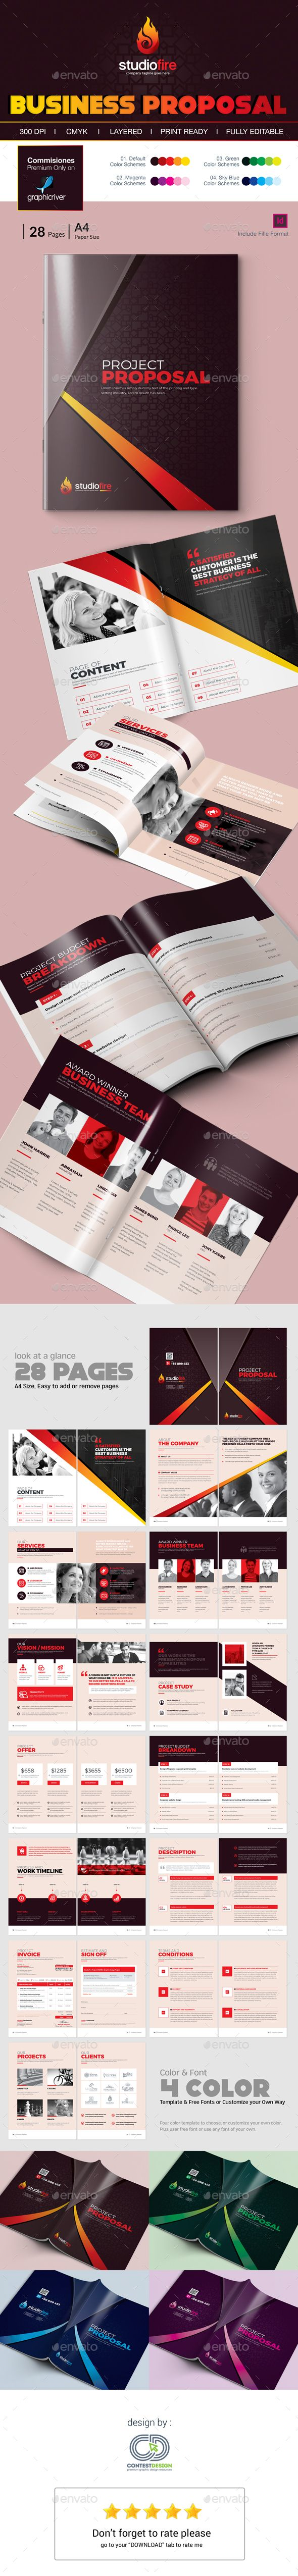 Project Proposal Template Design This proposal is made in indesign ...